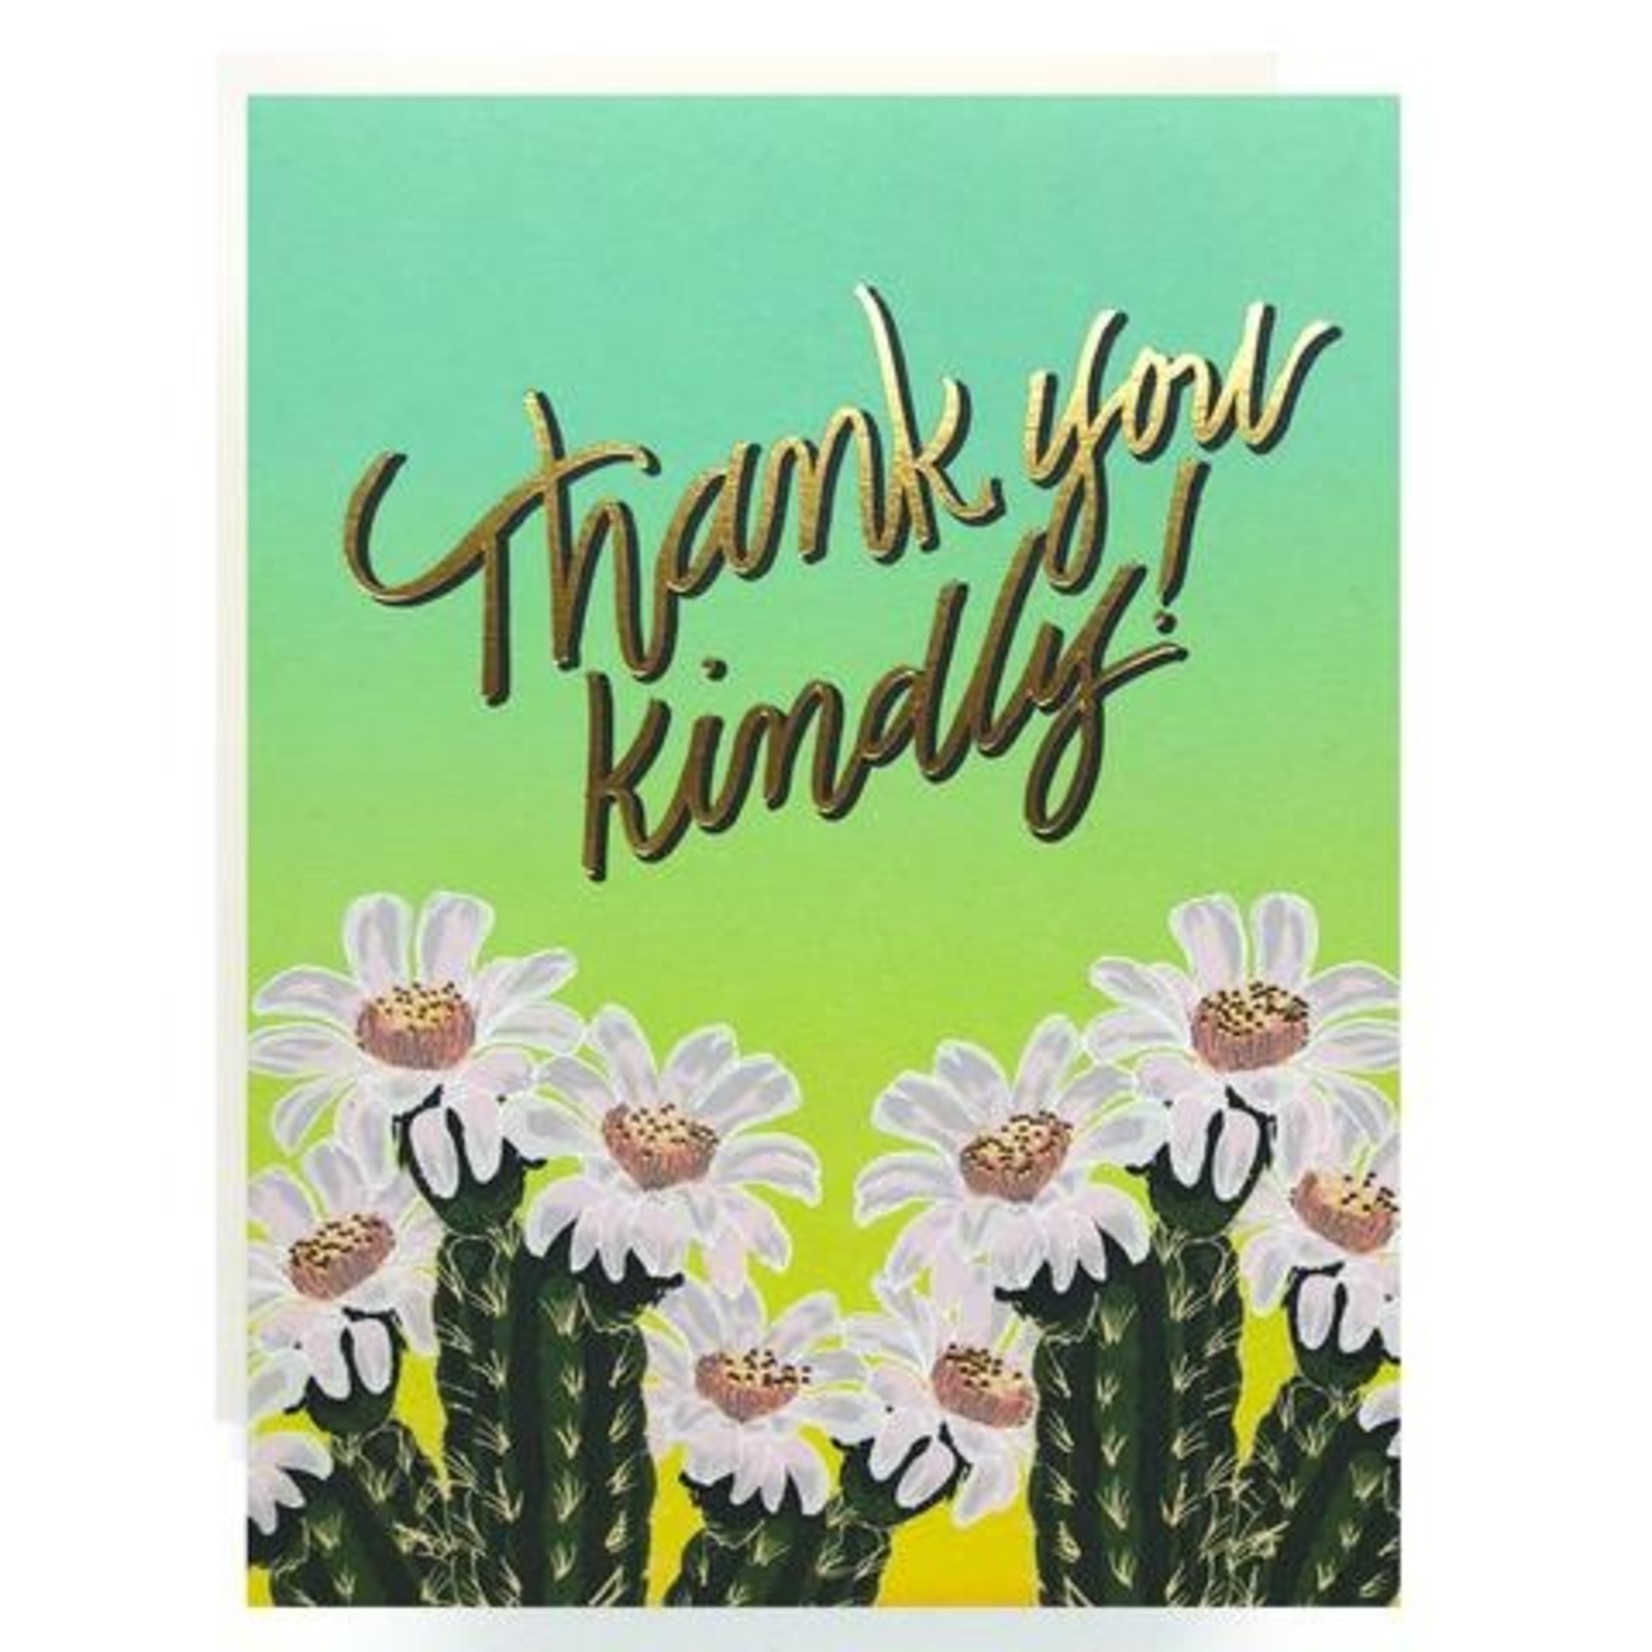 Thank You Card: Thank You Kindly